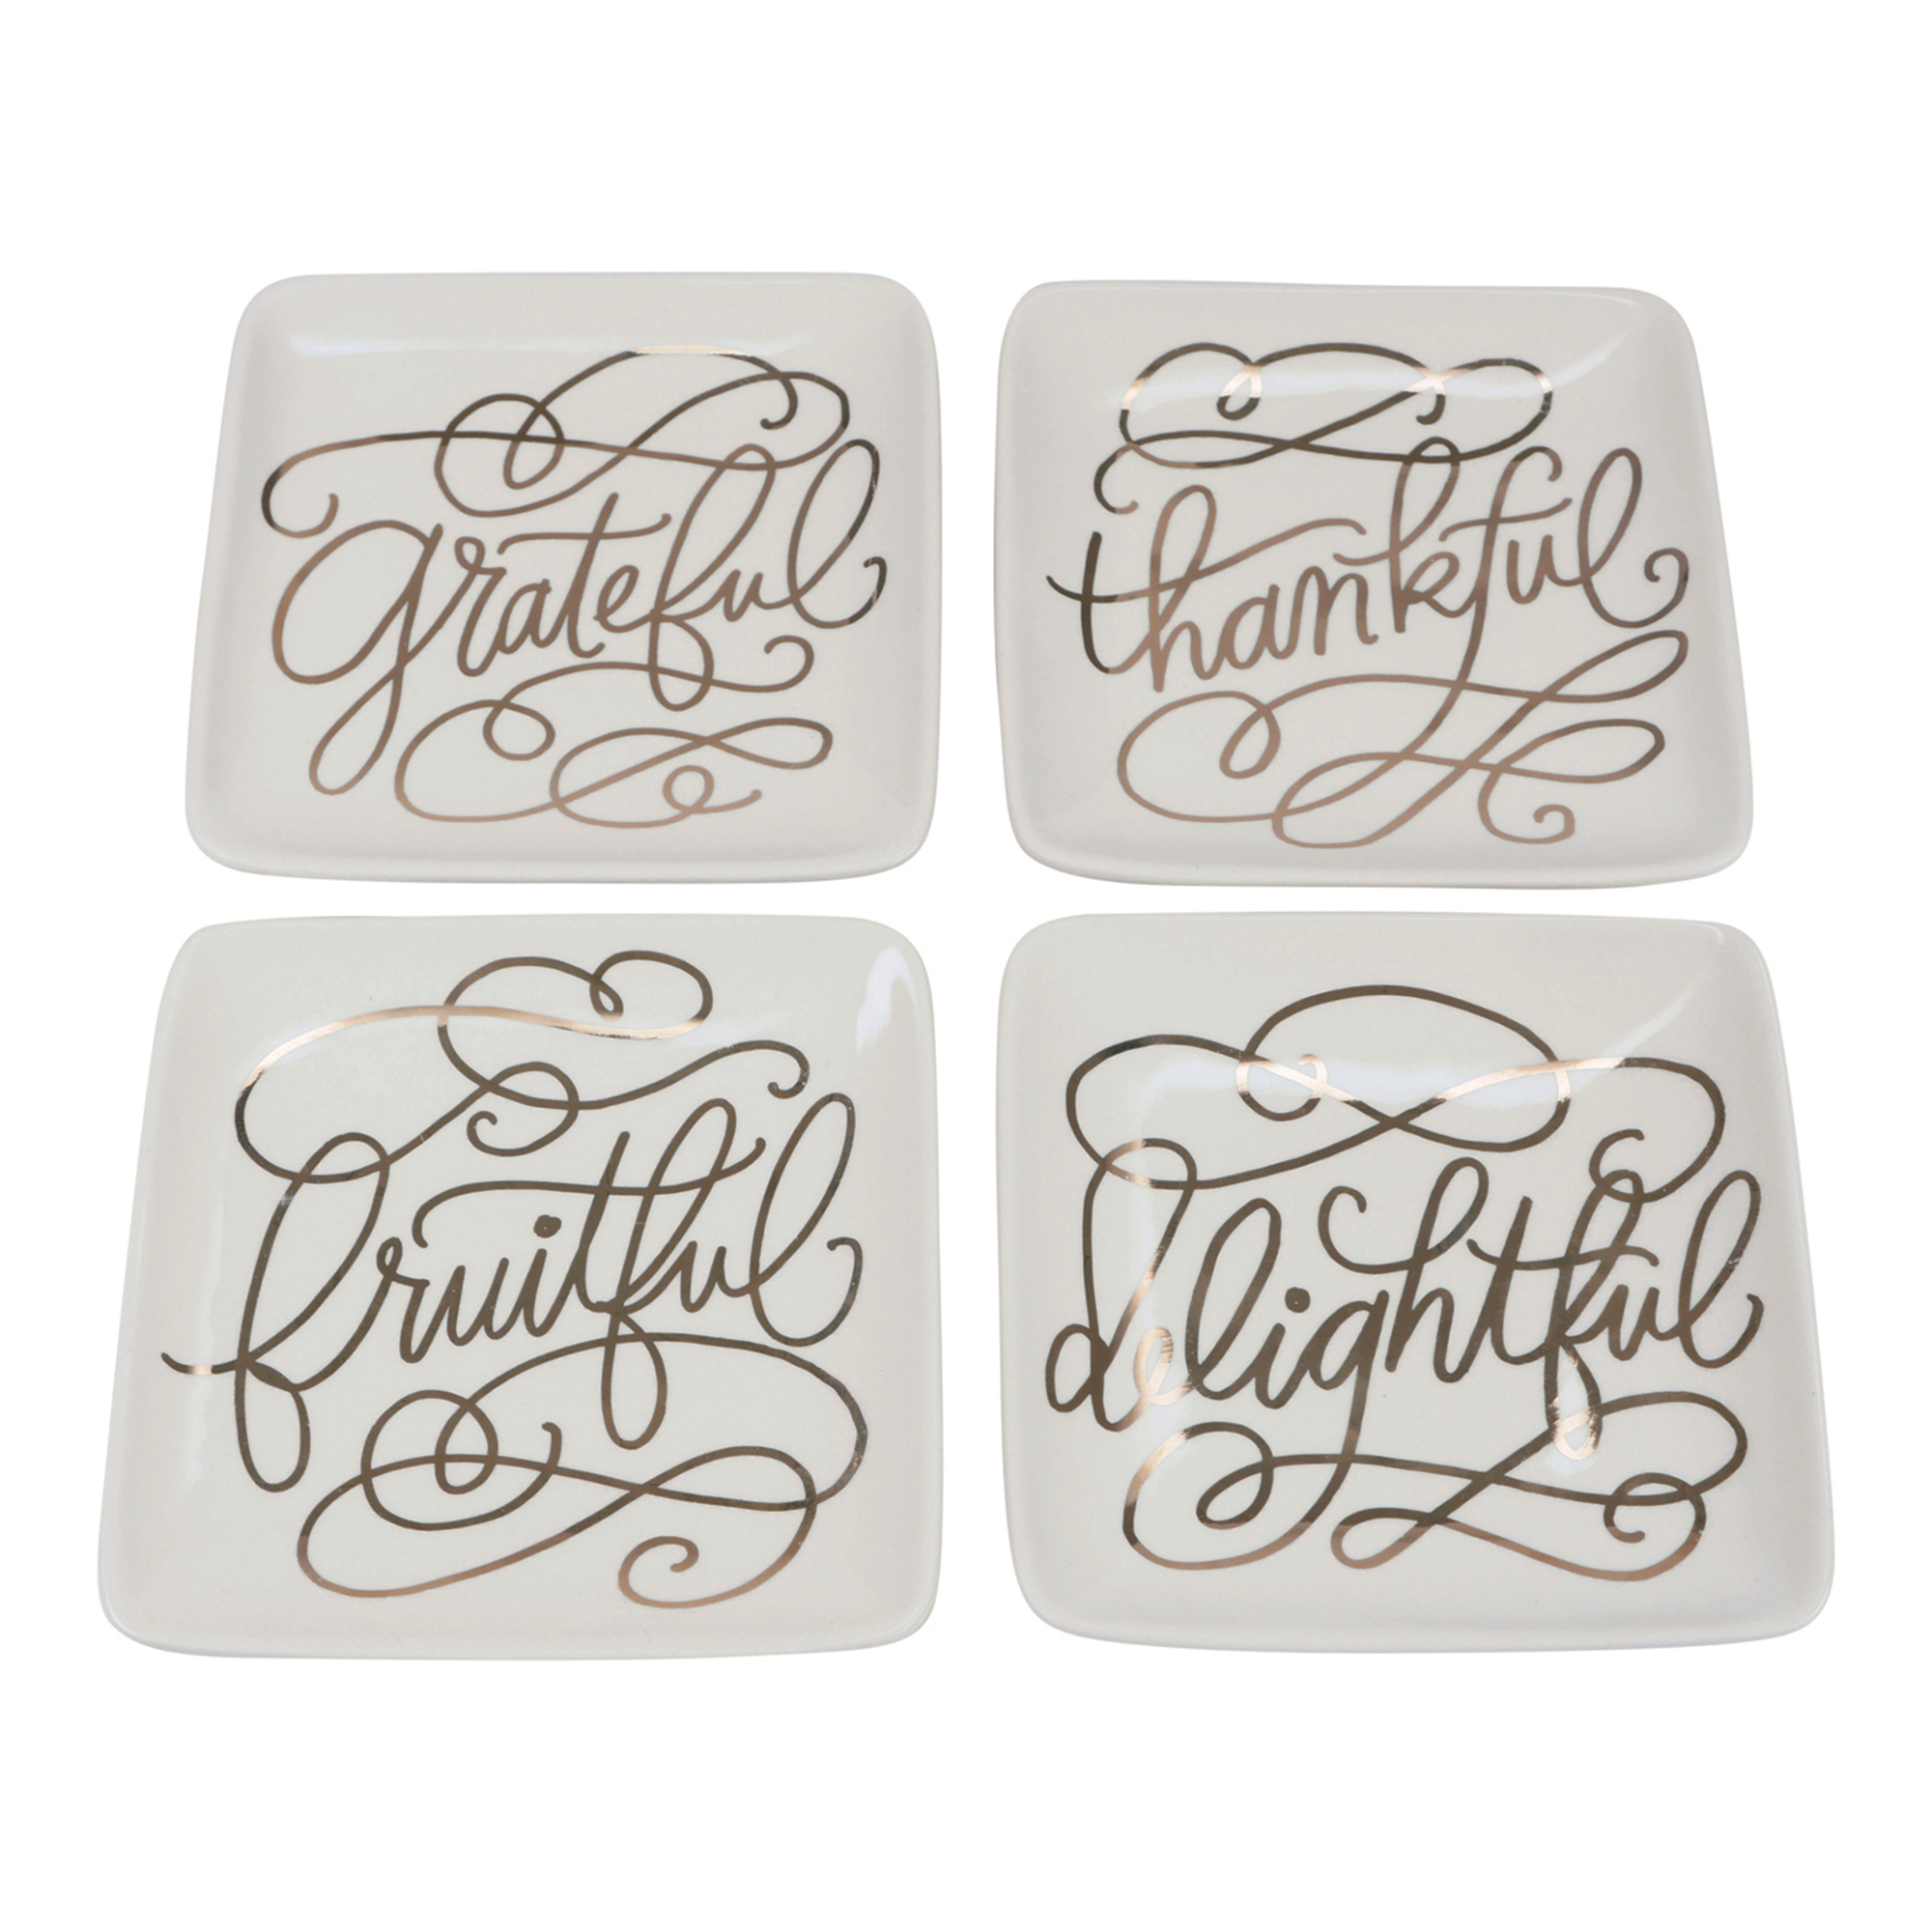 Grateful Appetizer Plates, Set of 4